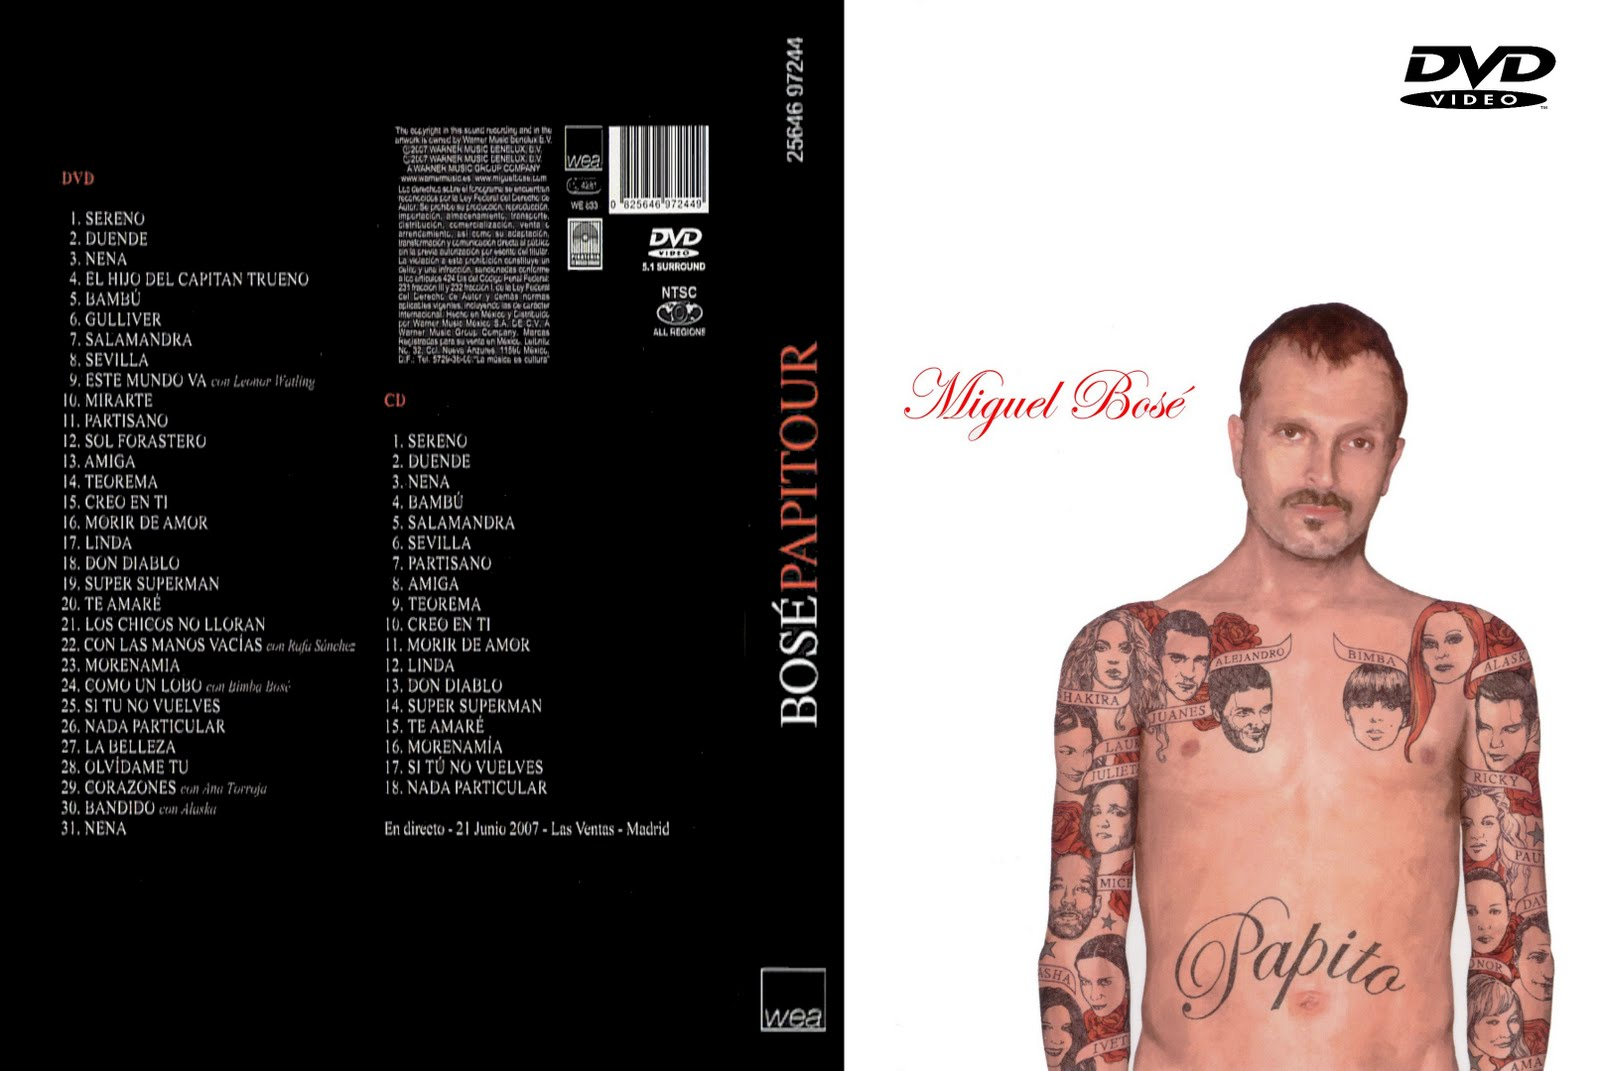 papito miguel bose dvd